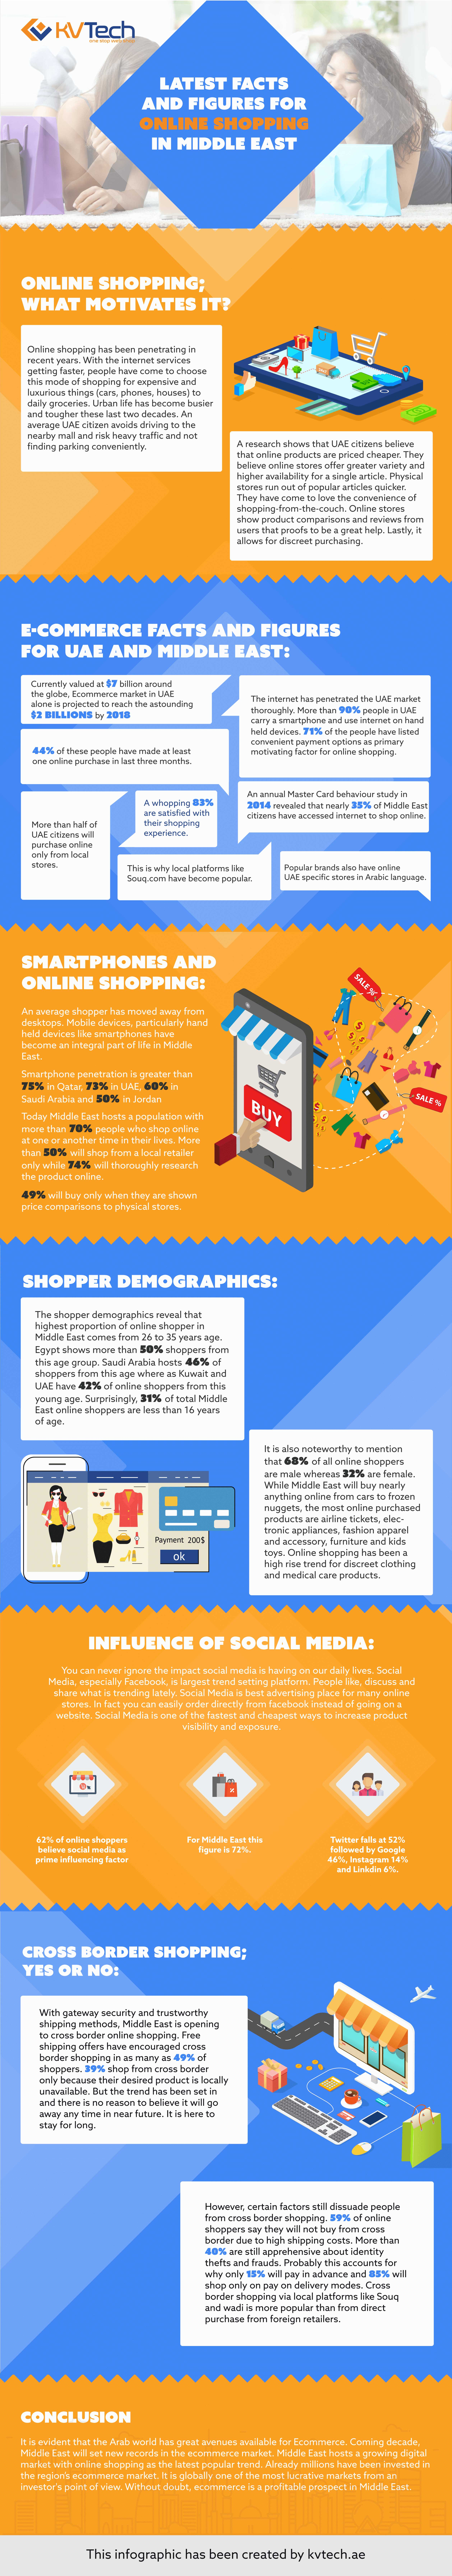 Latest-facts-and-figures-for-online-shopping-in-middle-east